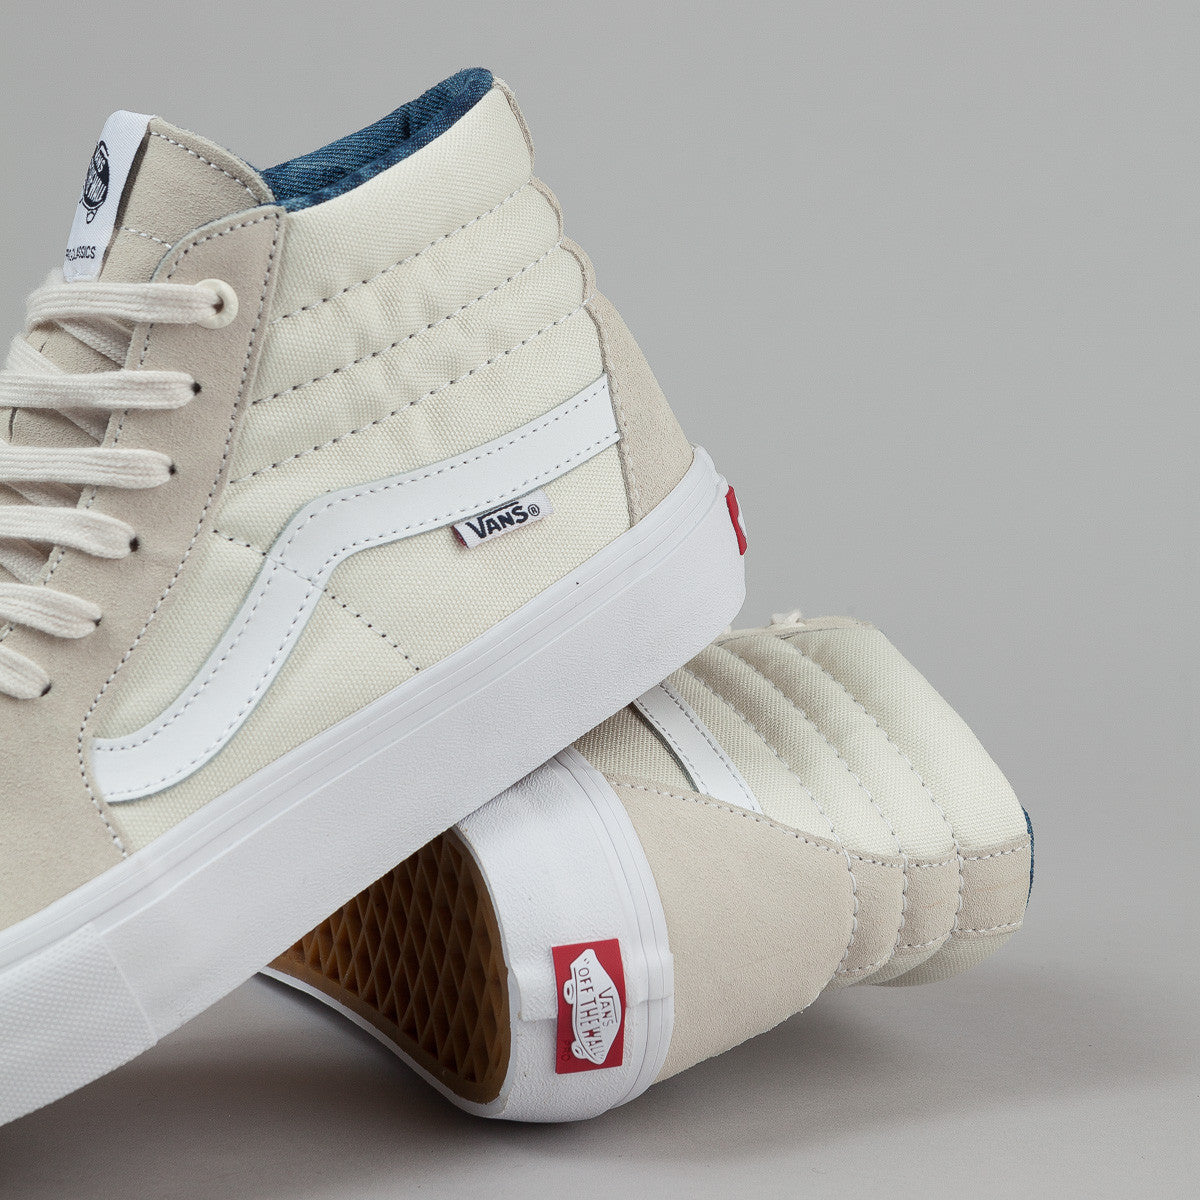 Vans Sk8-Hi Pro Shoes - (Acid Wash) White